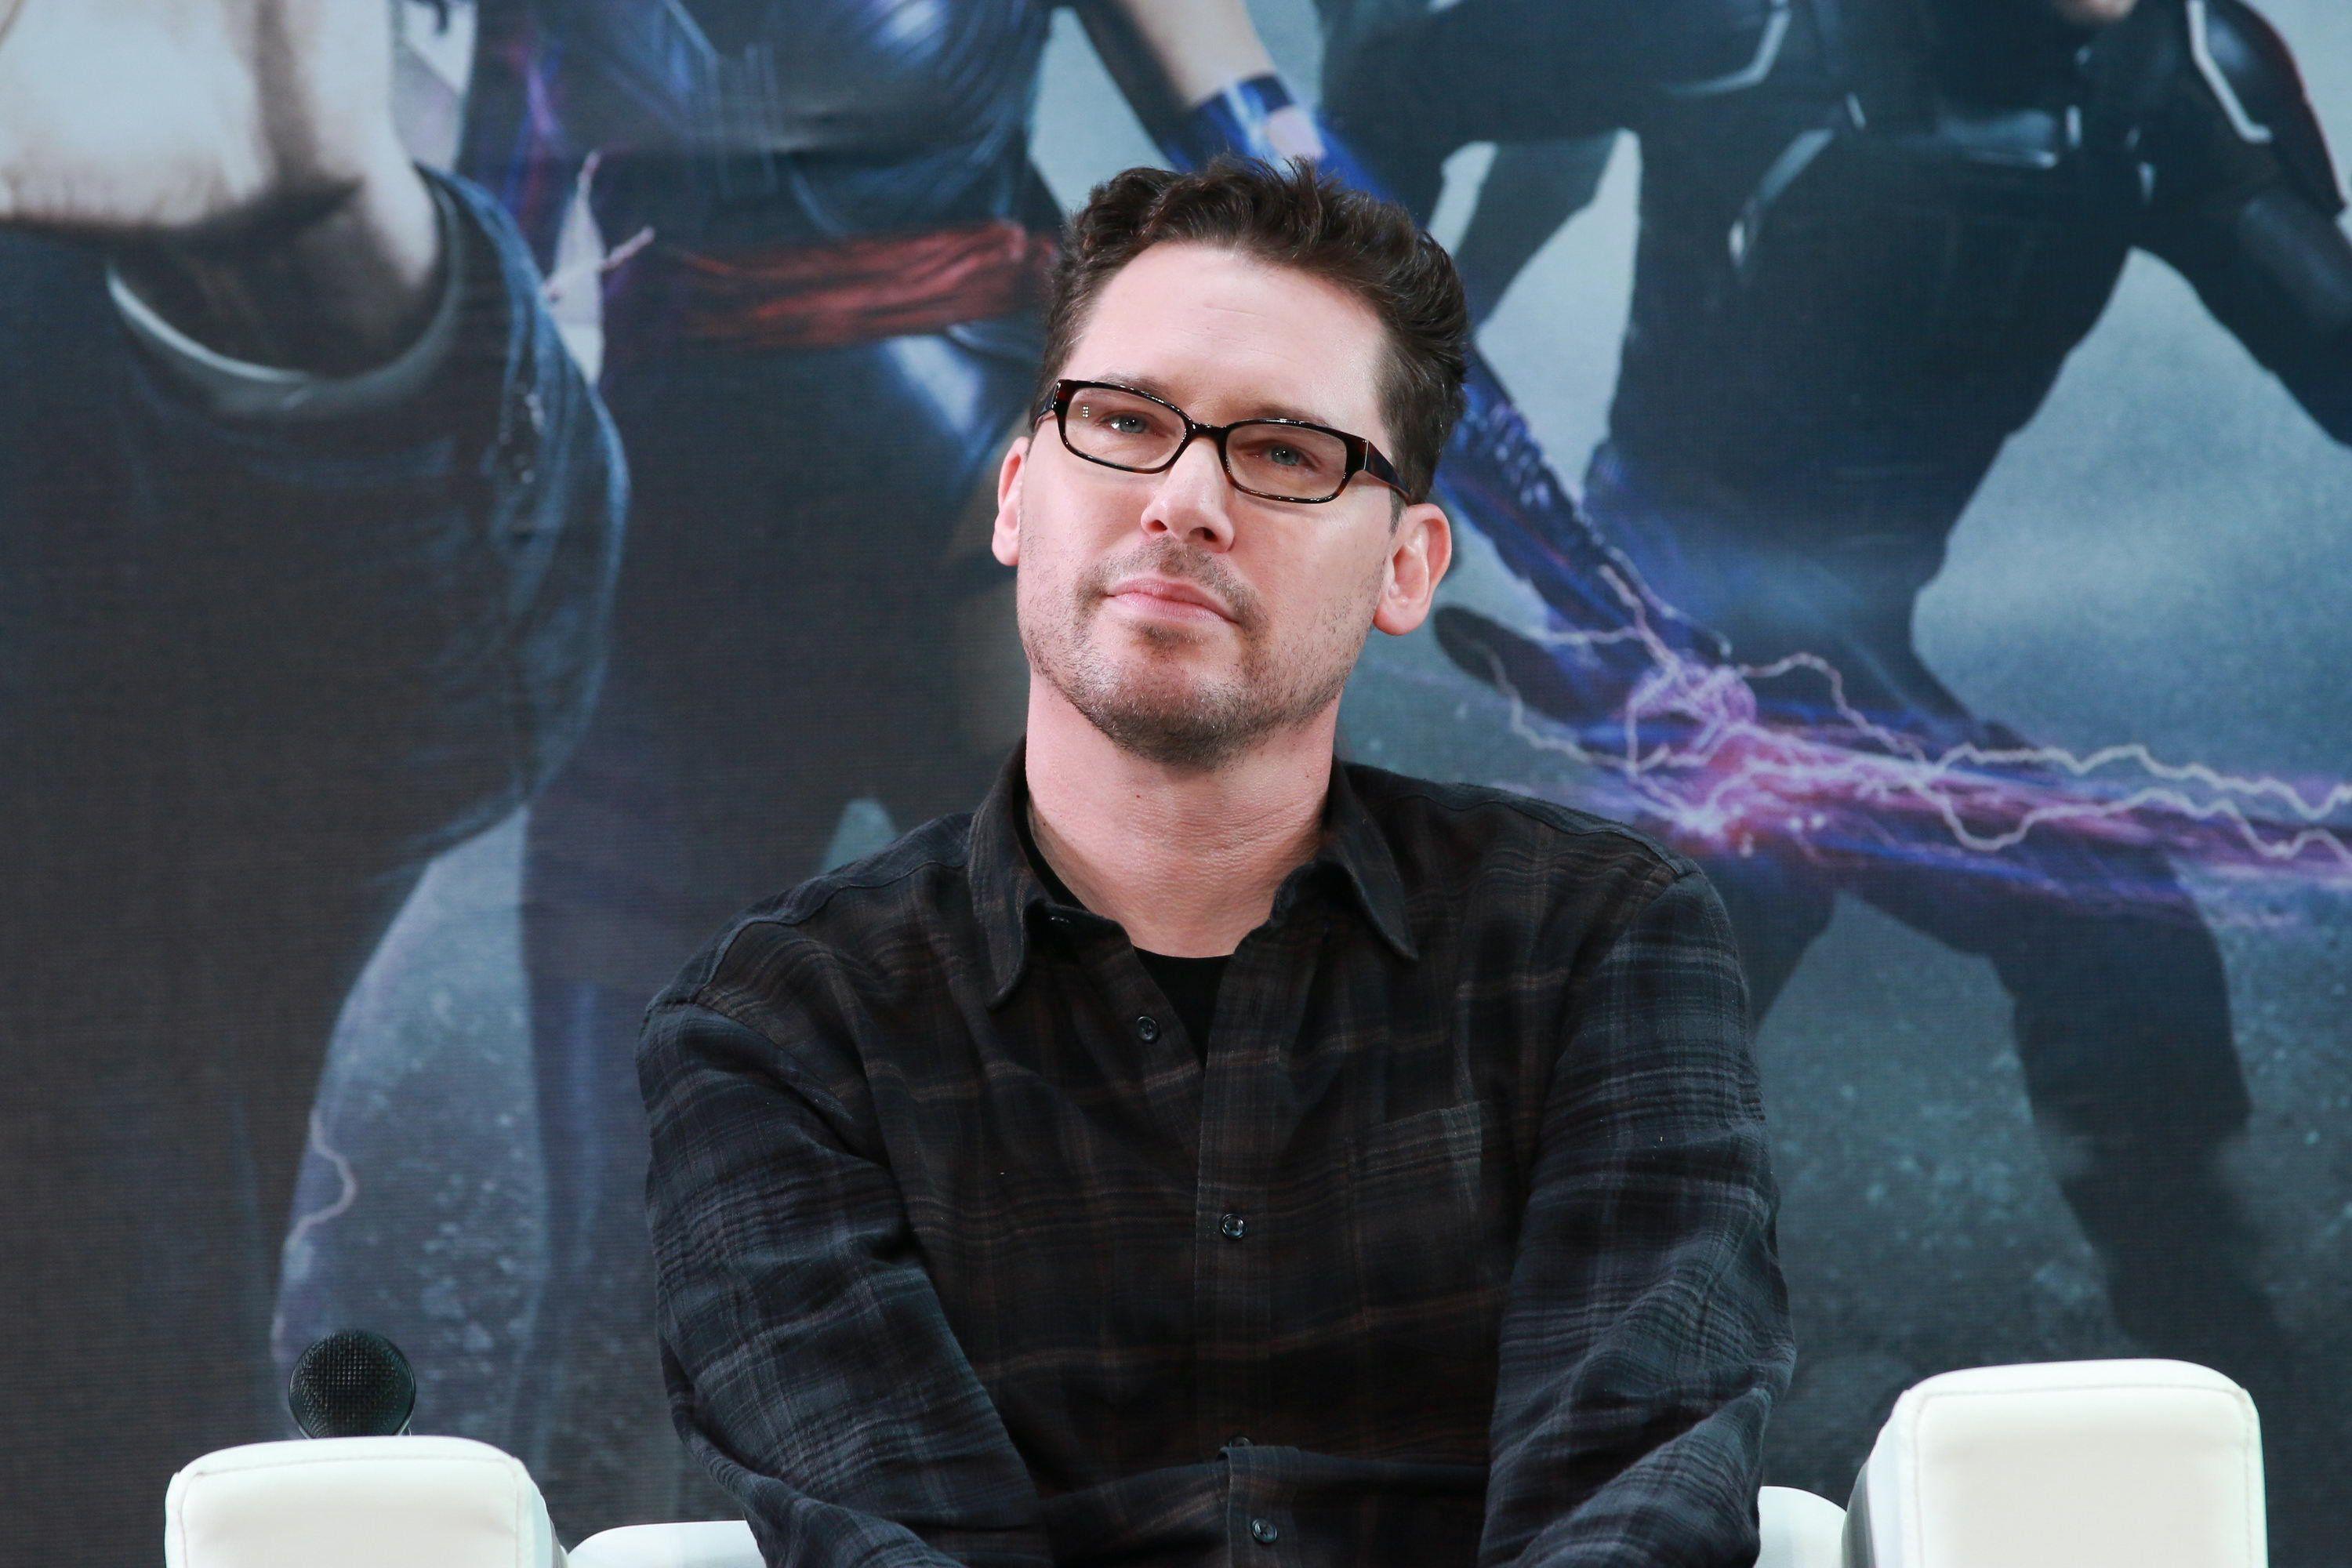 BEIJING, CHINA - MAY 18:  (CHINA OUT) American director and producer Bryan Singer attends Tsinghua campus visit for new movie 'X-Men: Apocalypse' on May 18, 2016 in Beijing, China.  (Photo by VCG/VCG via Getty Images)